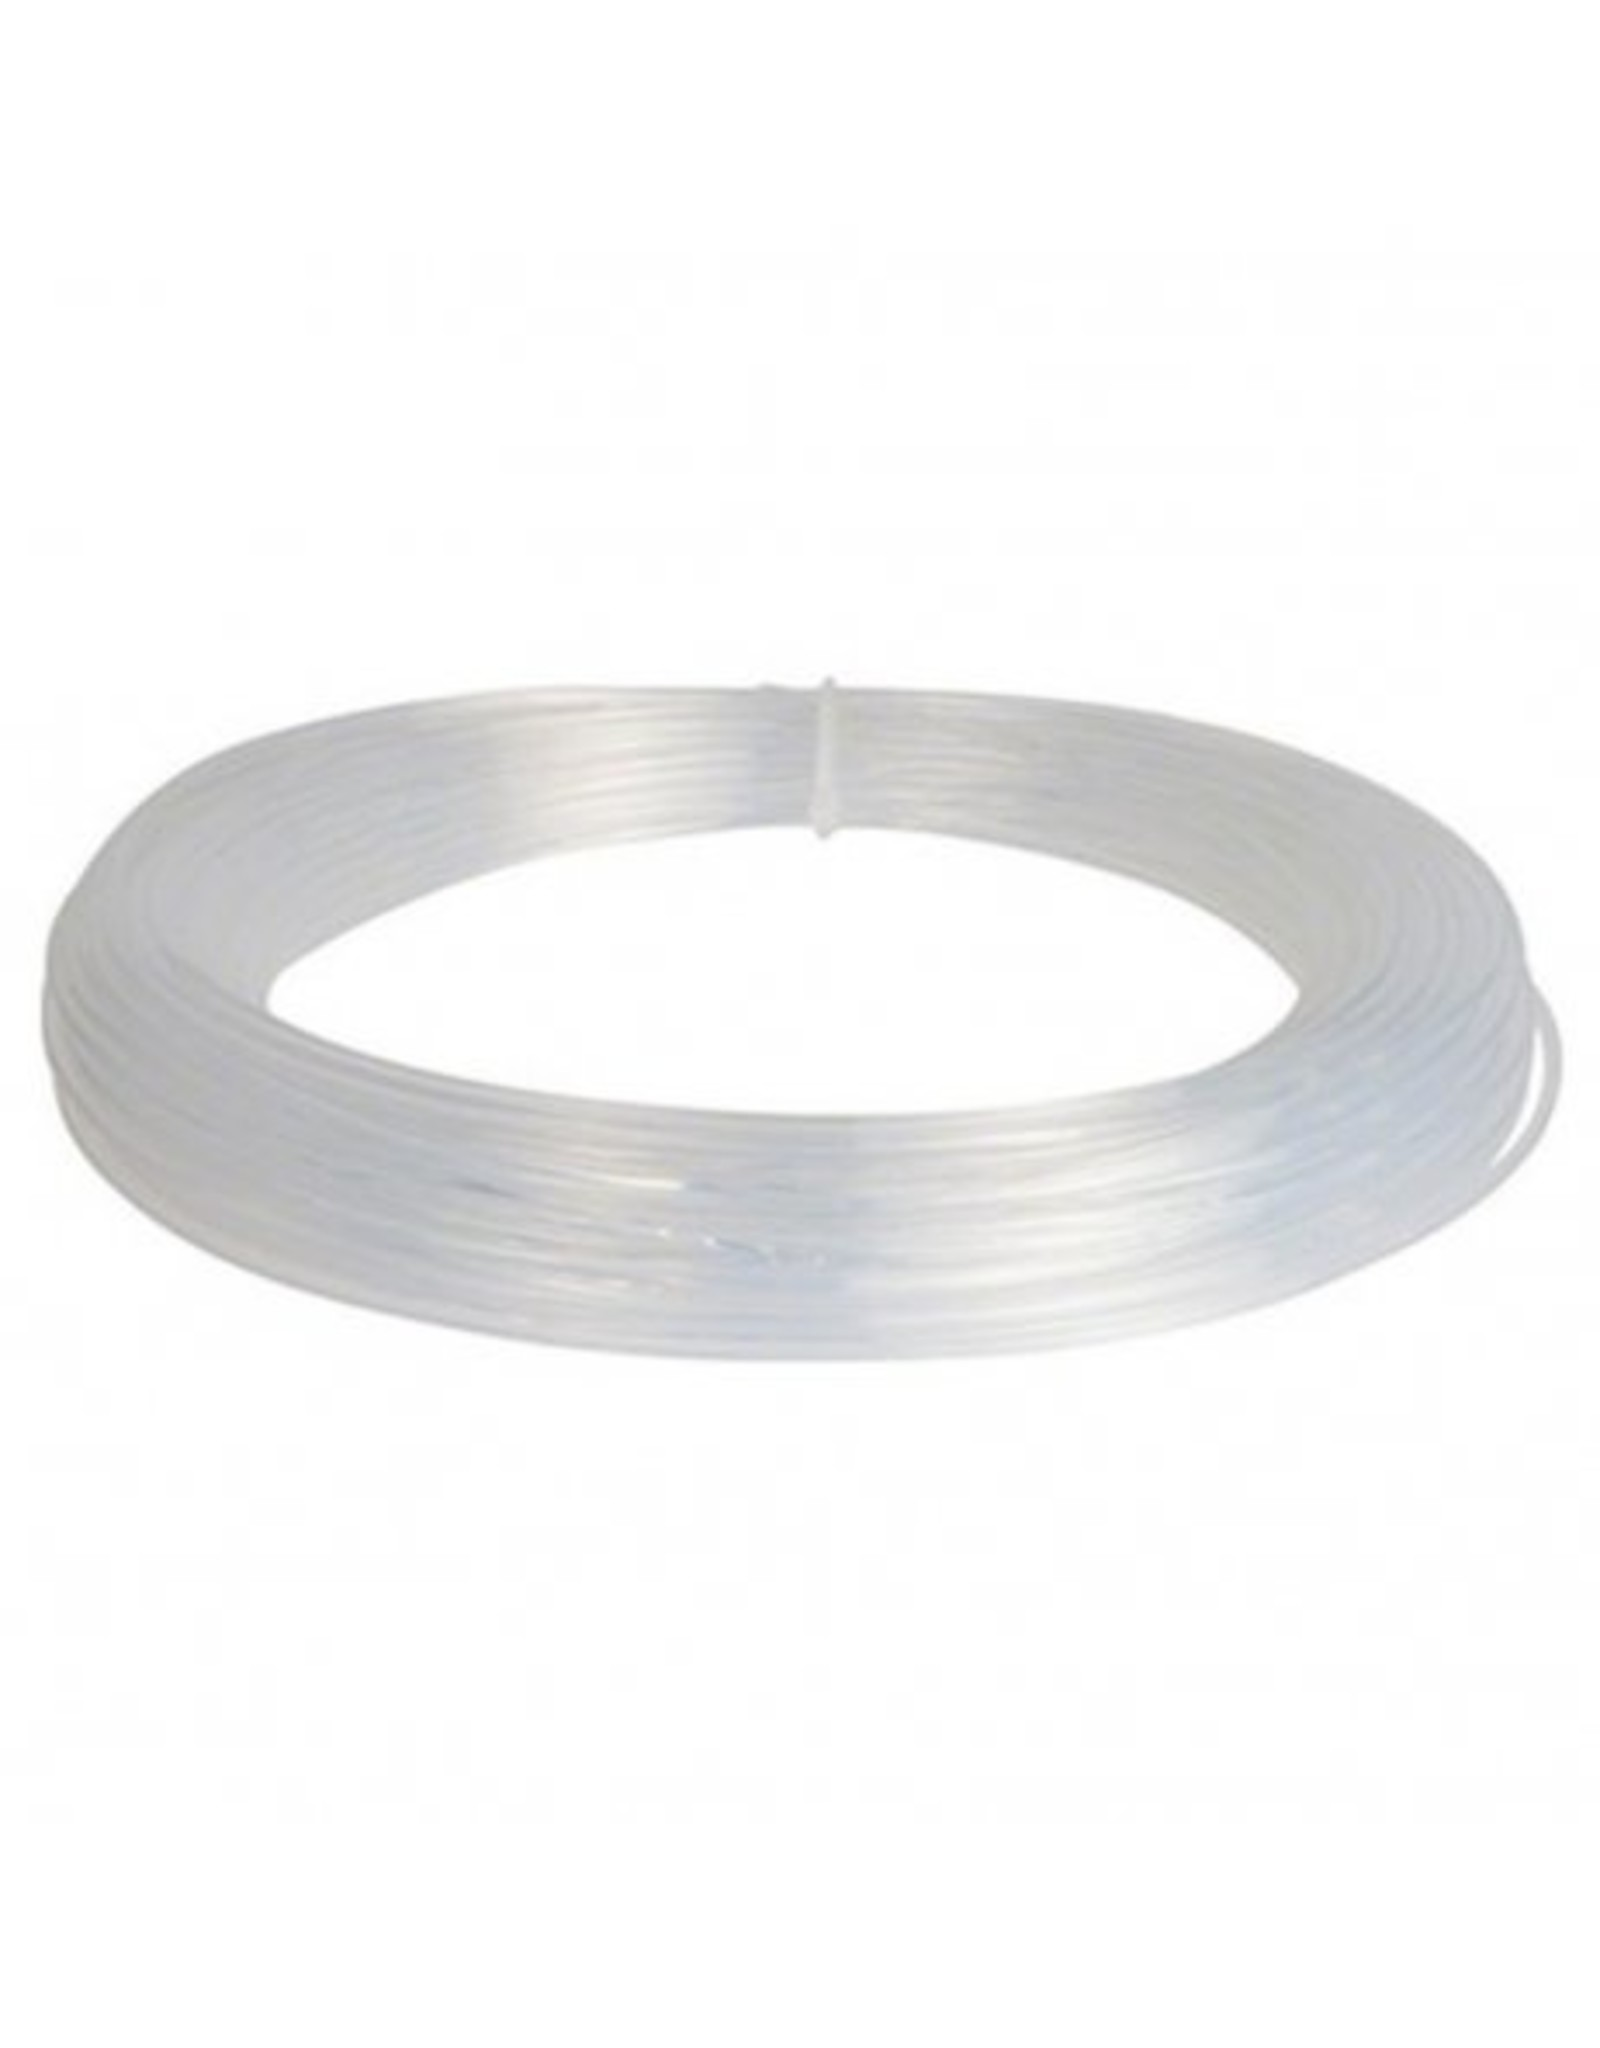 LAY Filaments BendLay (flex), 3mm, 0.25kg